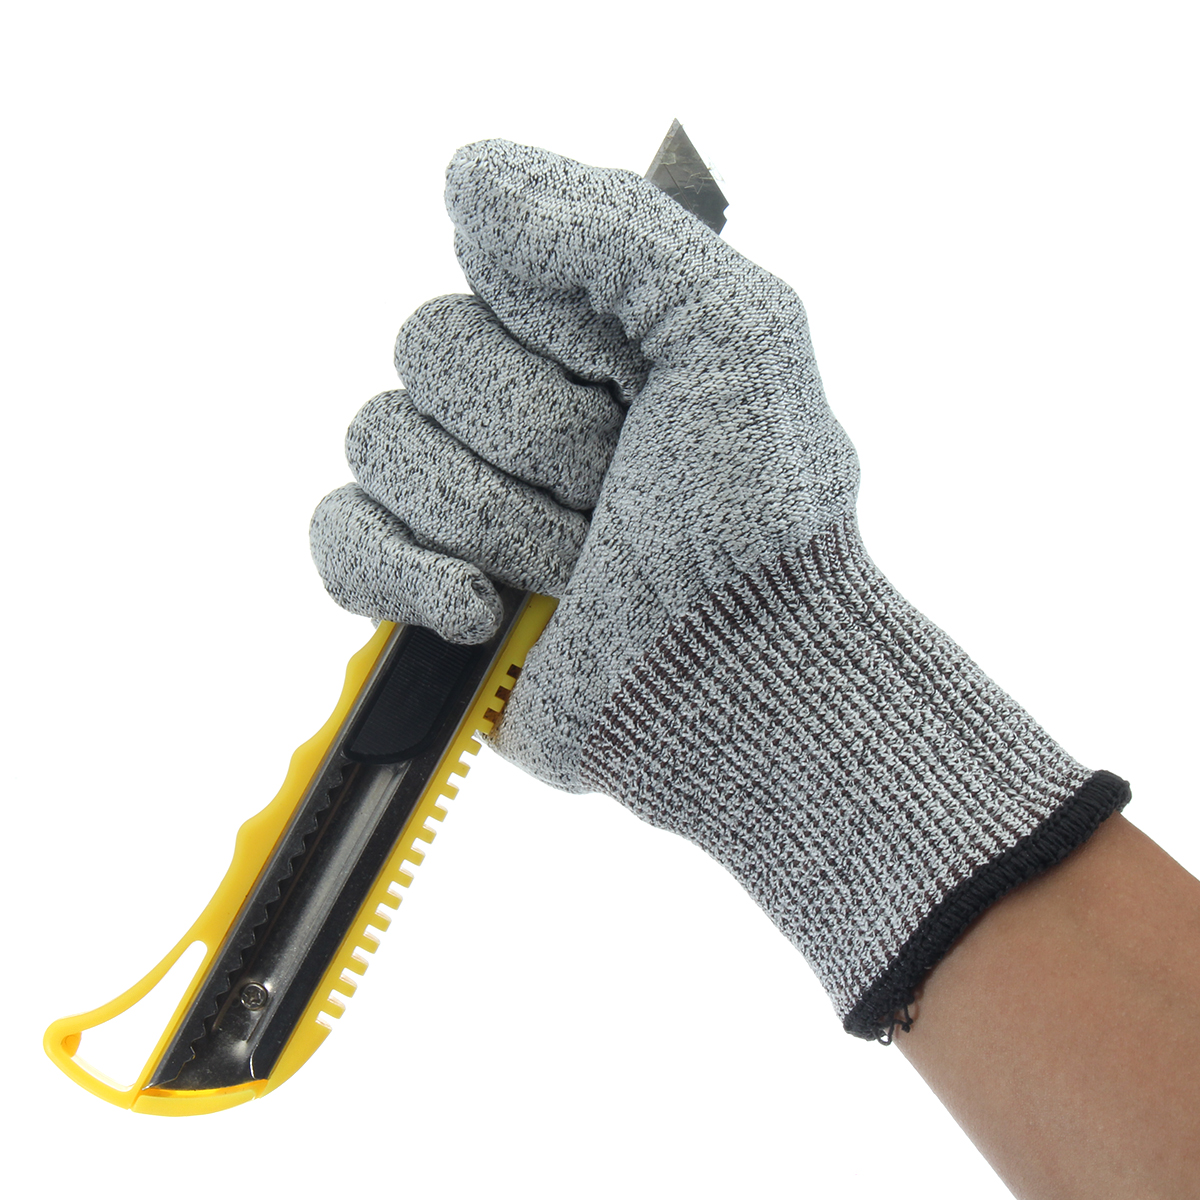 Safety Cut Proof Stab Resistant Stainless Steel Wire Metal Mesh Butcher Gloves Cut-Resistant Safety Gloves europe and the authentic proof cut glove cut against blade puncture proof black cloth gloves gloves category 5 wire page 8